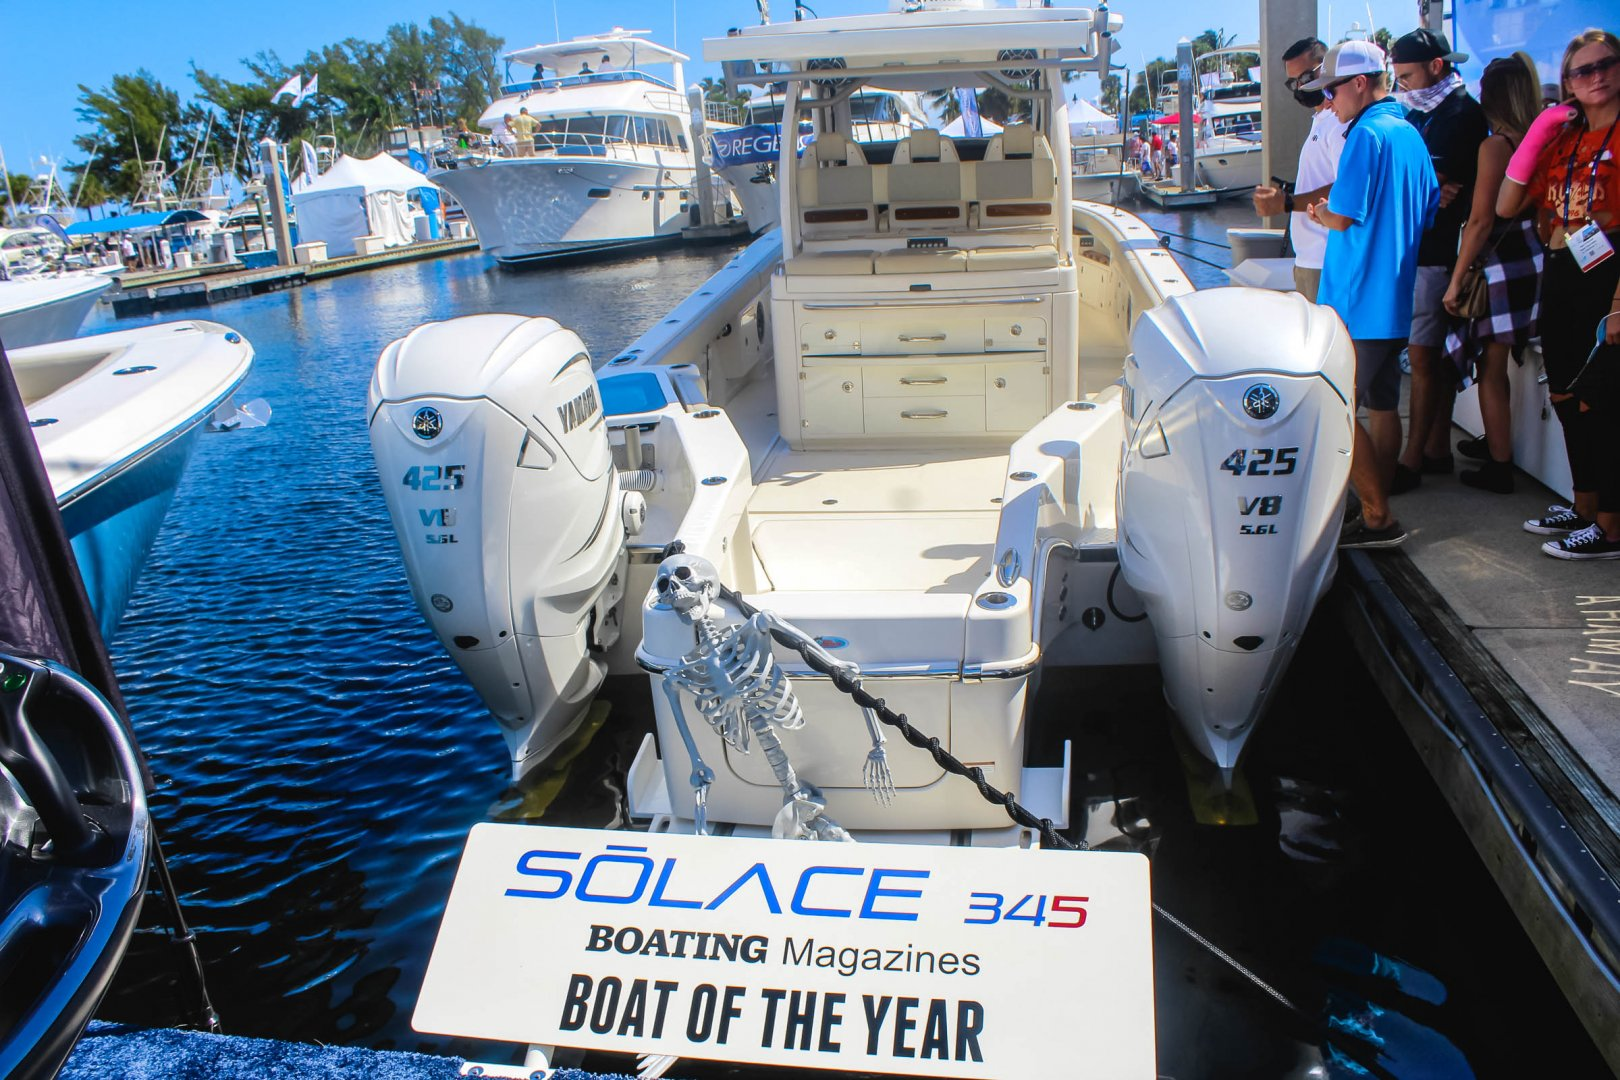 1 Sol 345 Boat of the Year_web_size.jpg